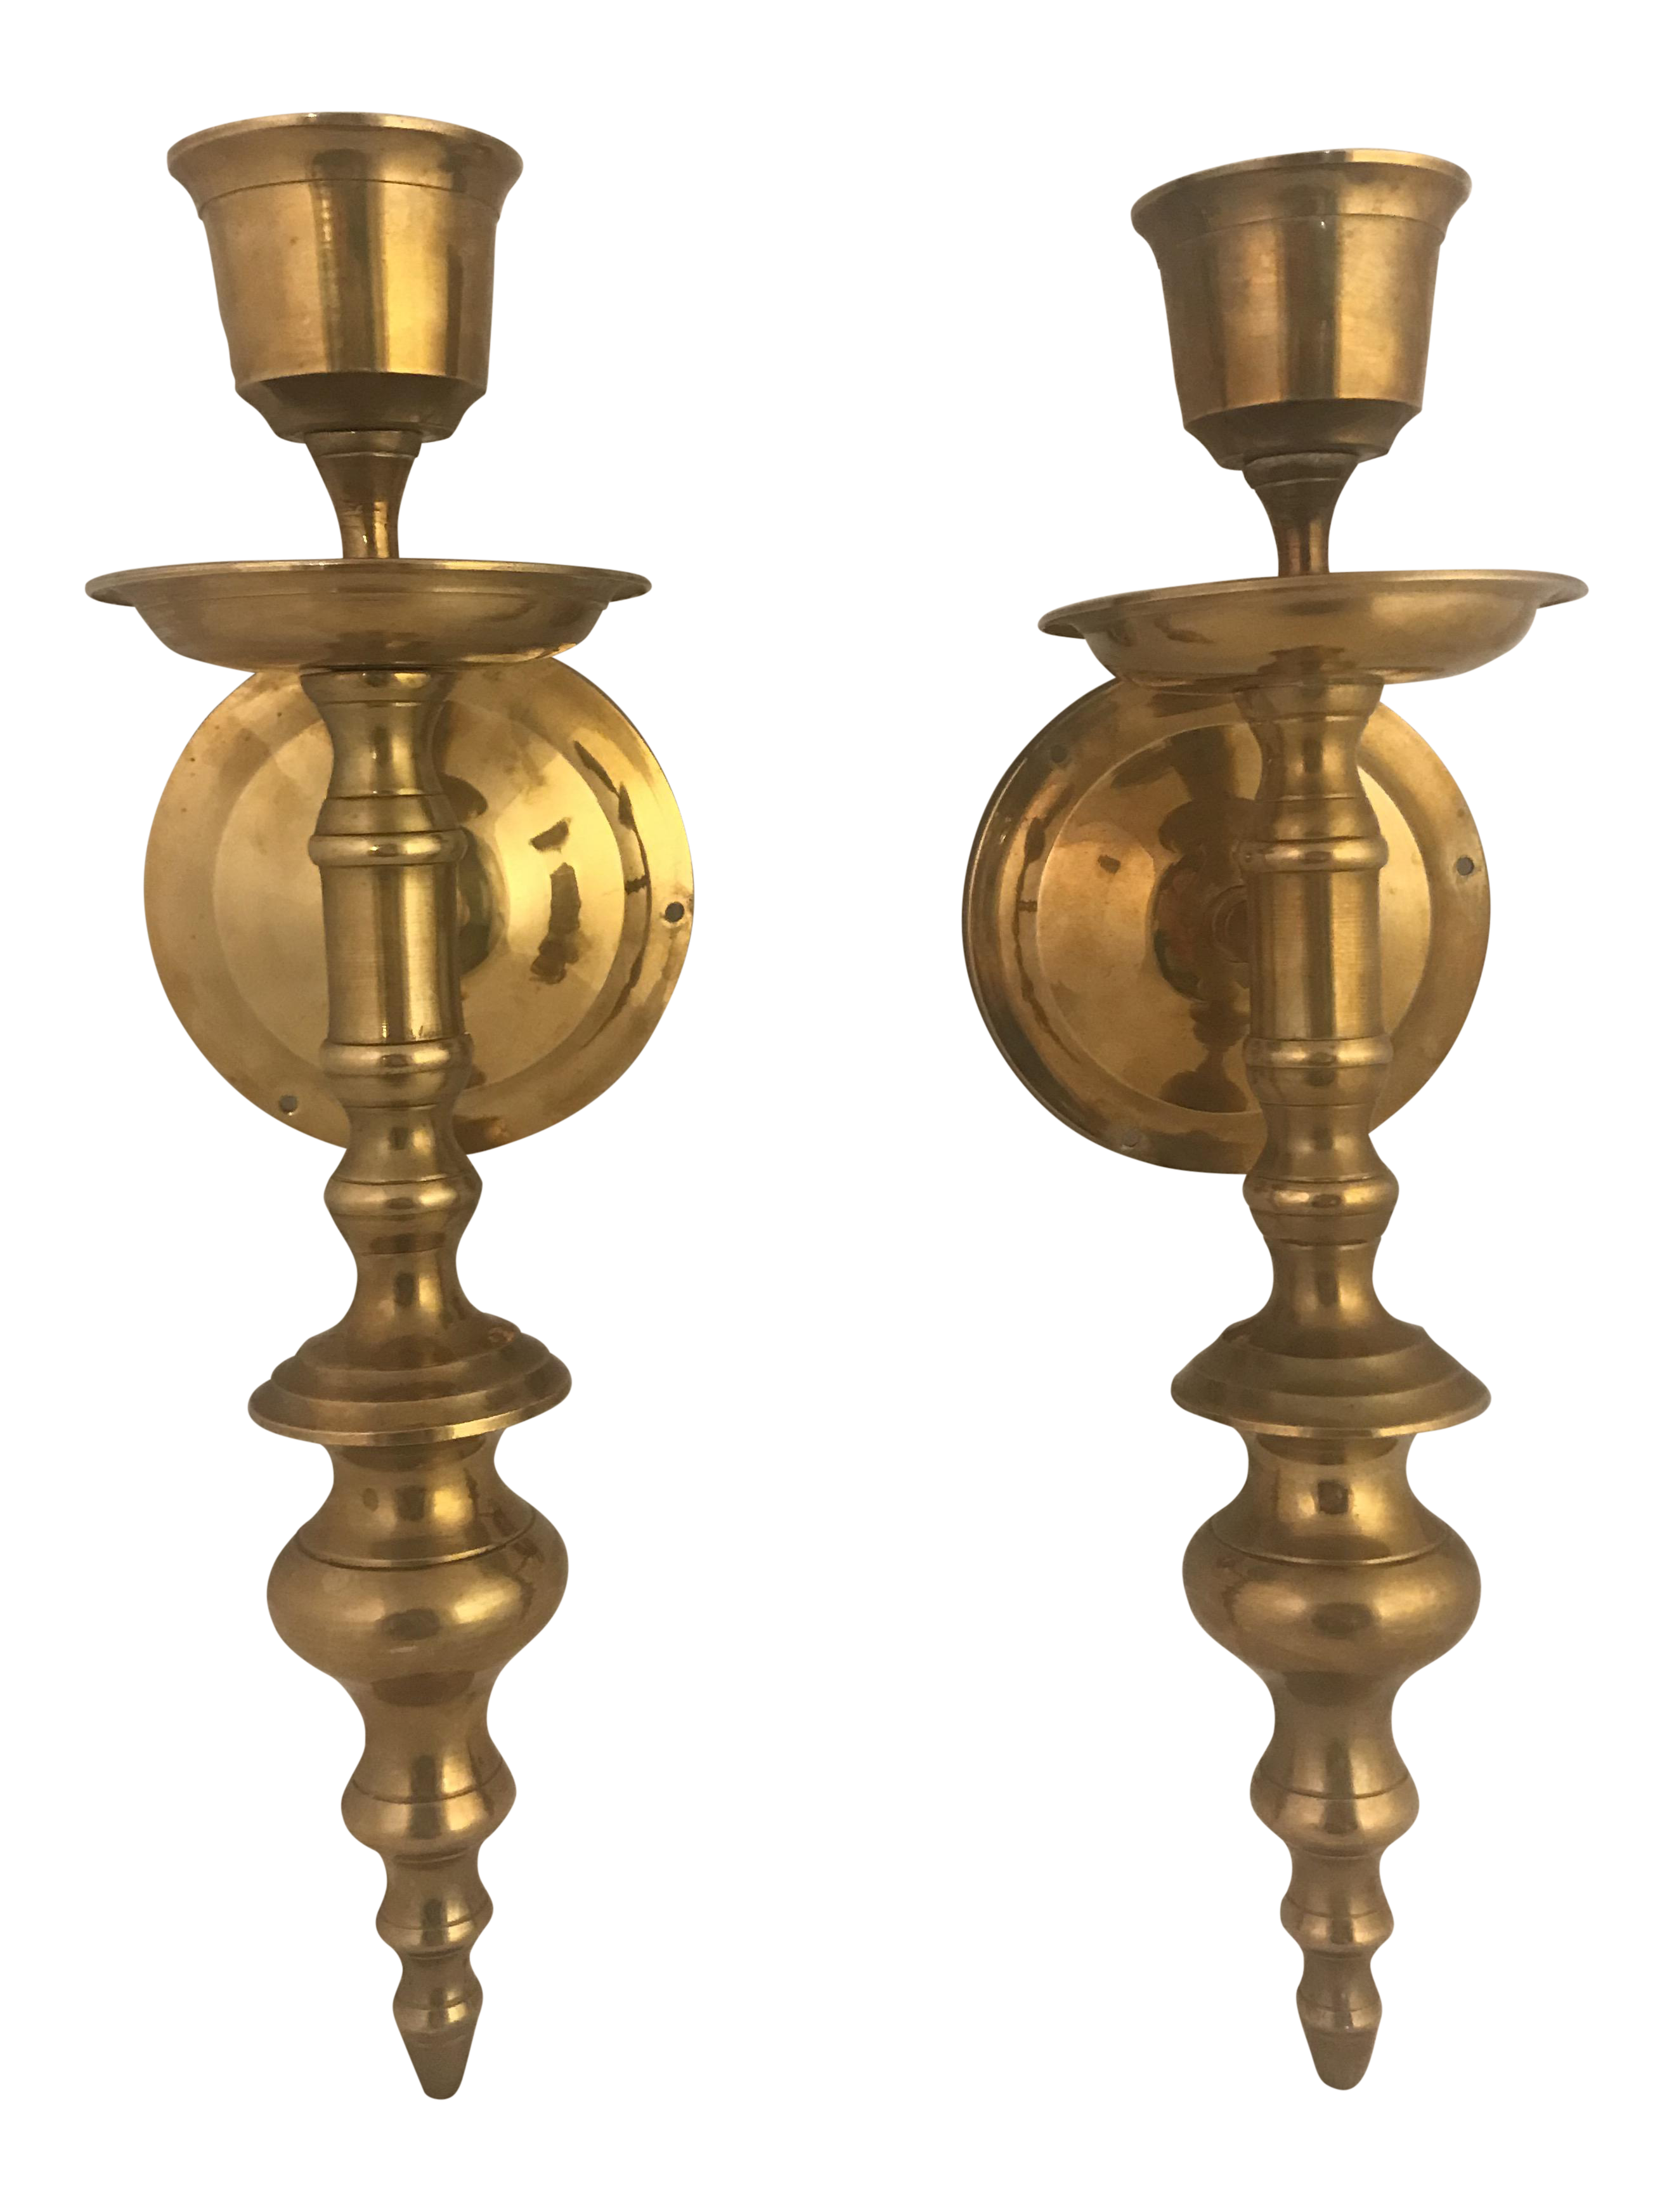 Vintage Brass Wall Mounted Sconce Candle Holders - A Pair ... on Vintage Wall Sconce Candle Holder Decorating Ideas id=51035